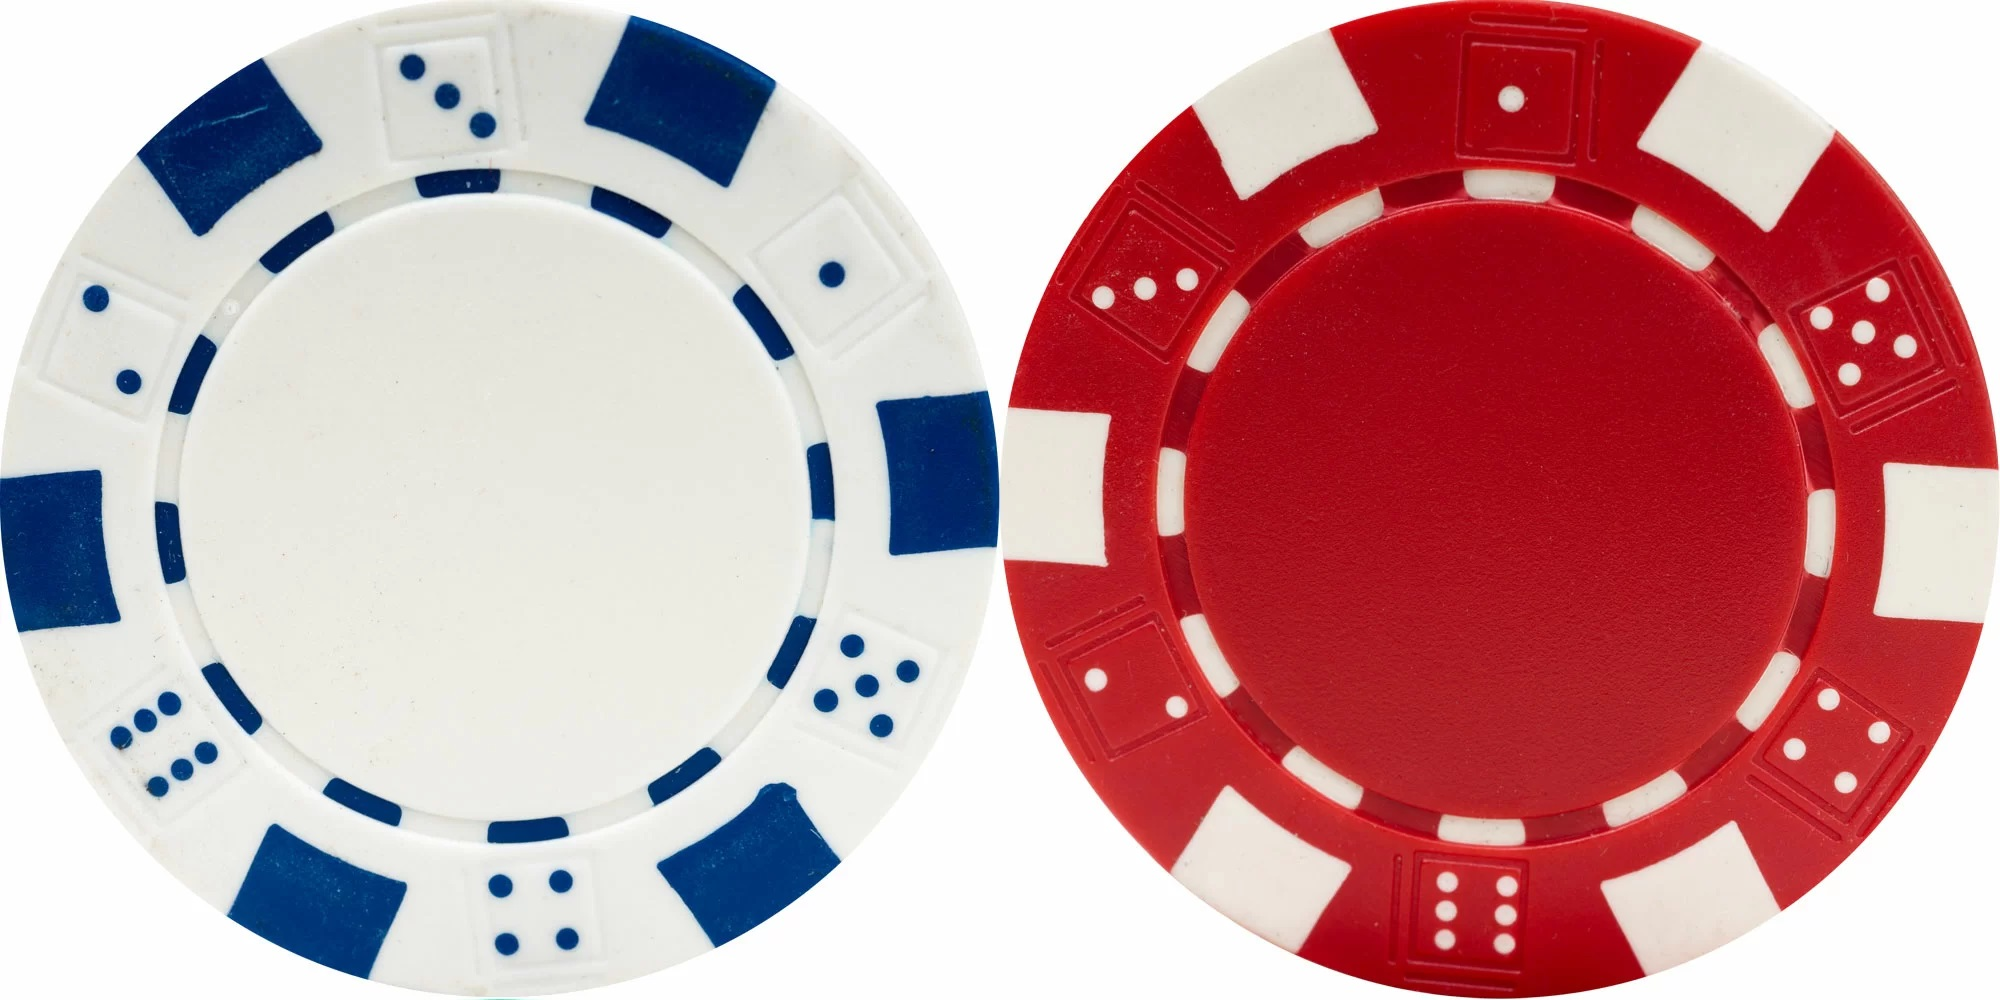 When to double in Blackjack